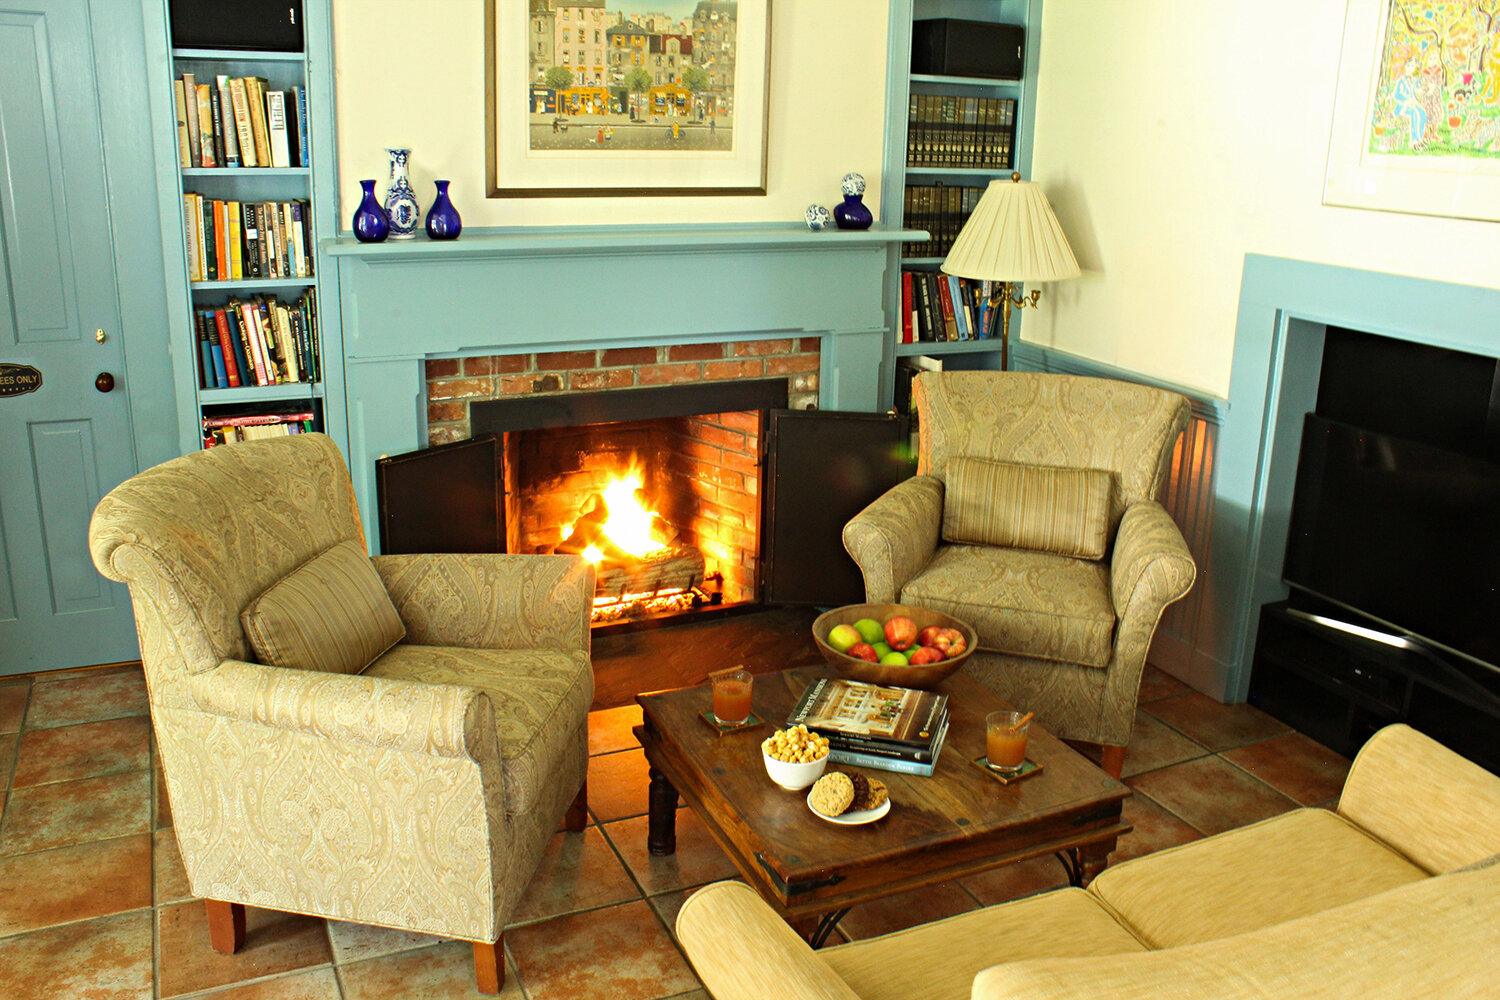 Fireplace_Living-Room_Stay-More-Save-MoreLa-Farge-Perry-House.jpg